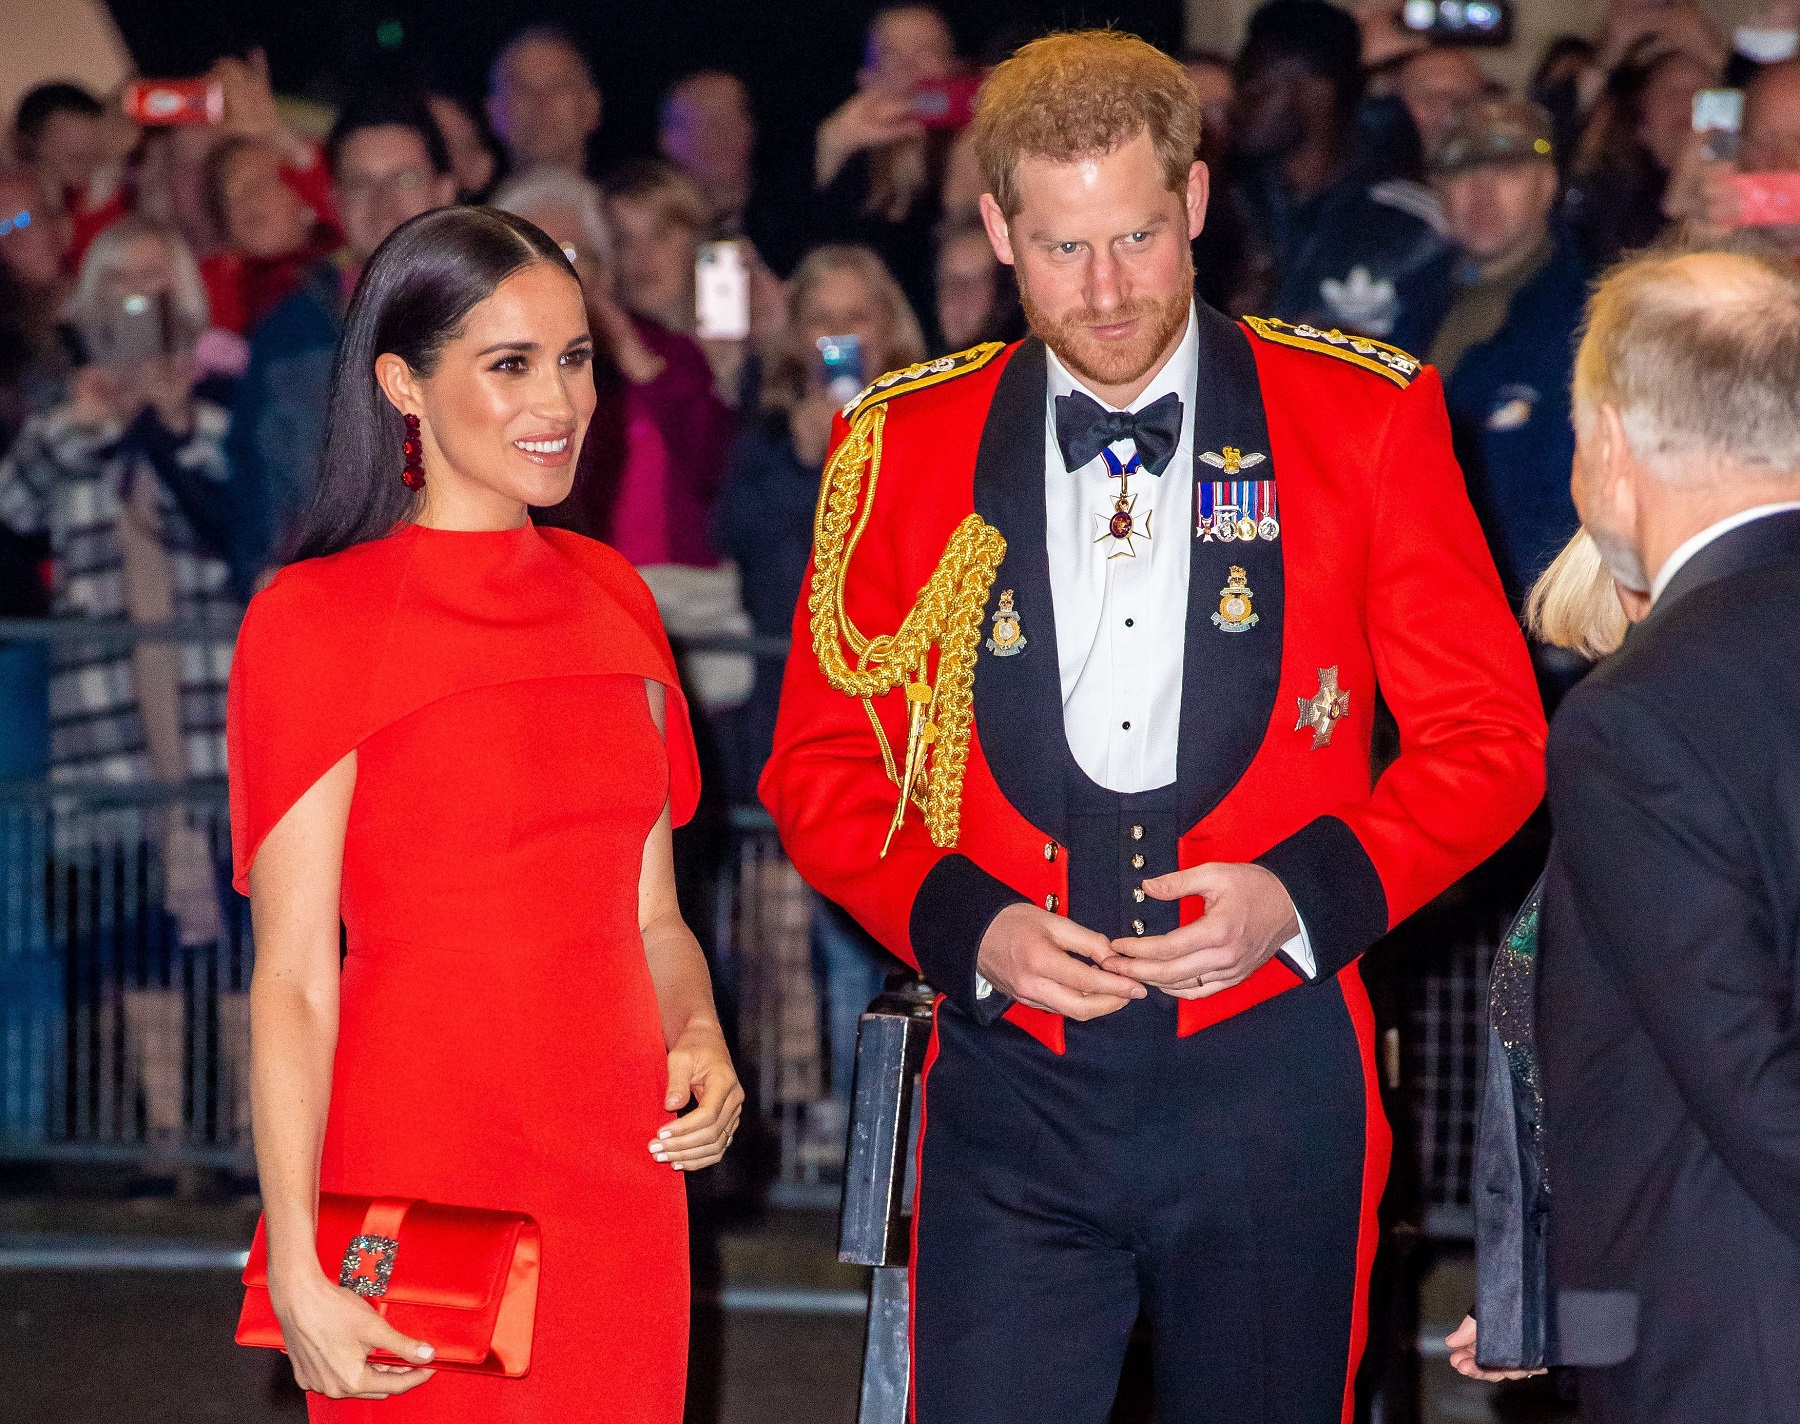 On March 31, Prince Harry and Meghan Markle, the Duke and Duchess of Sussex will be quitting as senior royals and along with that, stop using their HRH styles and no longer be able to have Sussex Royal as their brand. Together with their baby son Archie they are partly going to live in either Canada or the United States, where they want to become financially independent. 30 Mar 2020  Together with their baby son Archie they are partly going to live in either Canada or the United States, where they want to become financially independent.,Image: 510799149, License: Rights-managed, Restrictions: NO Netherlands, Model Release: no, Credit line: MEGA / The Mega Agency / Profimedia